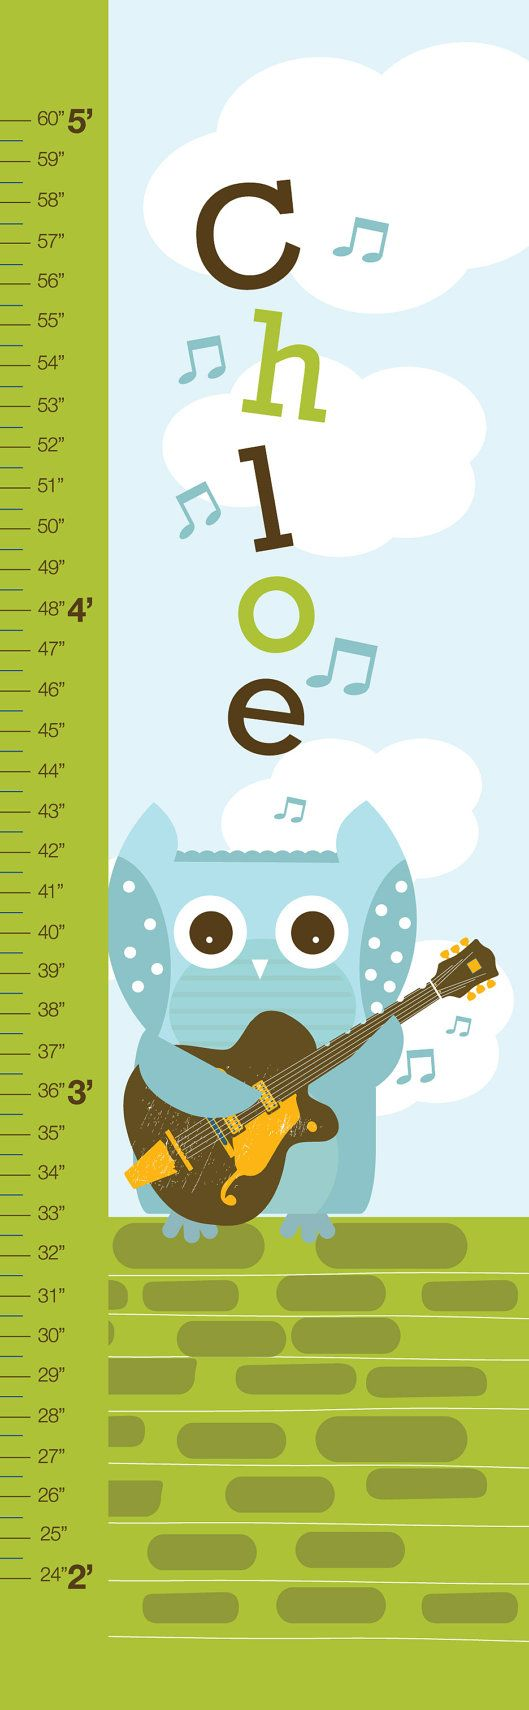 27 best growth charts for kids images on pinterest growth charts personalized owl growth chart on canvas singing owl by urbantickle for music nursery nvjuhfo Gallery